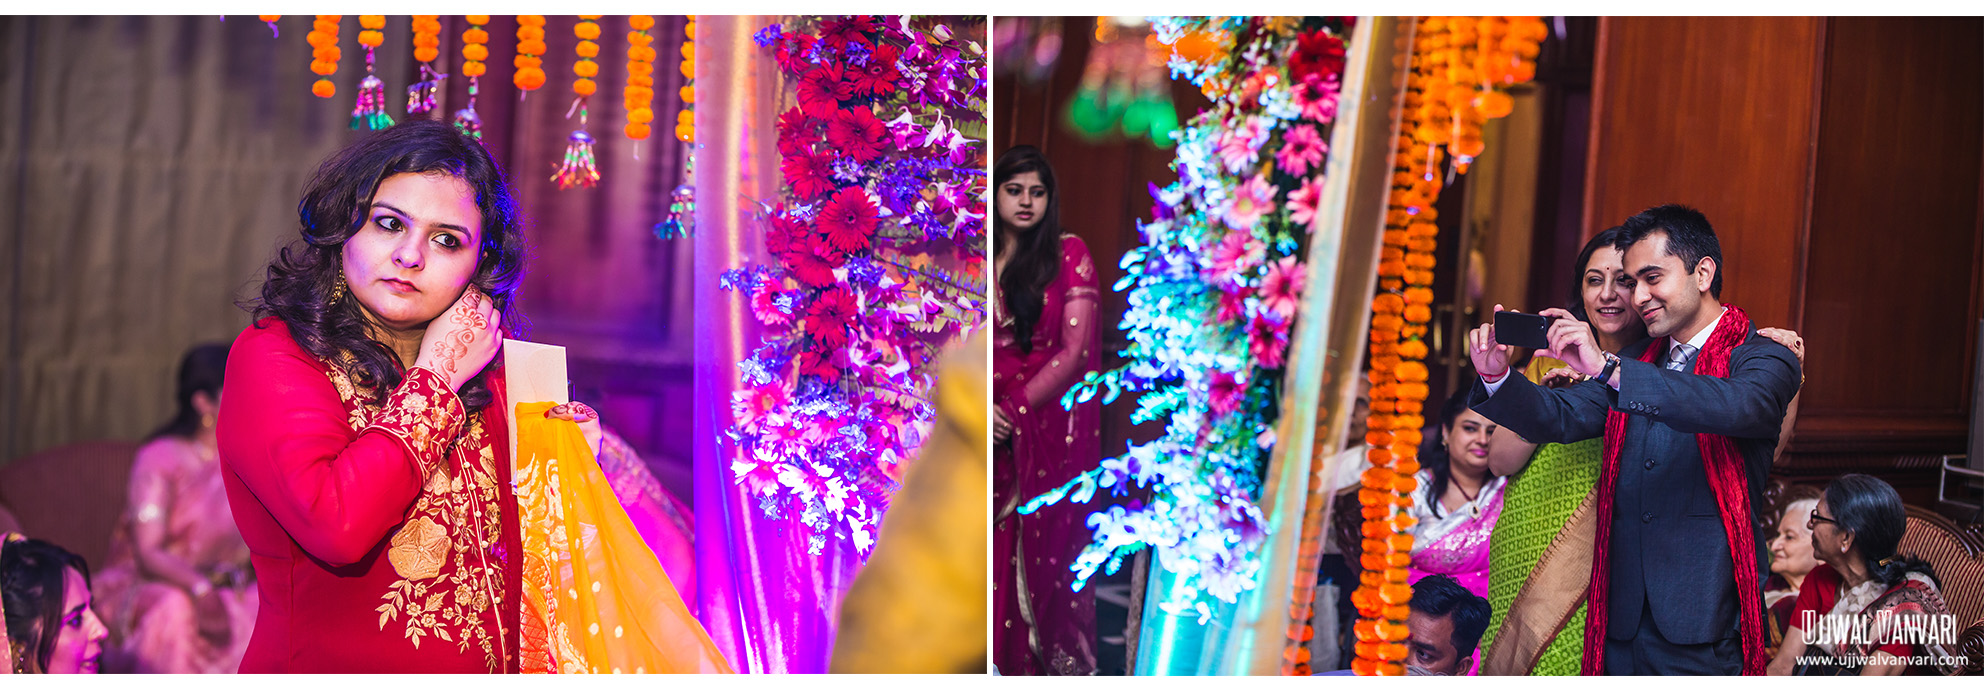 Best Wedding Photographer in Lucknow | Candid Wedding Photography | Candid Photographer in Lucknow